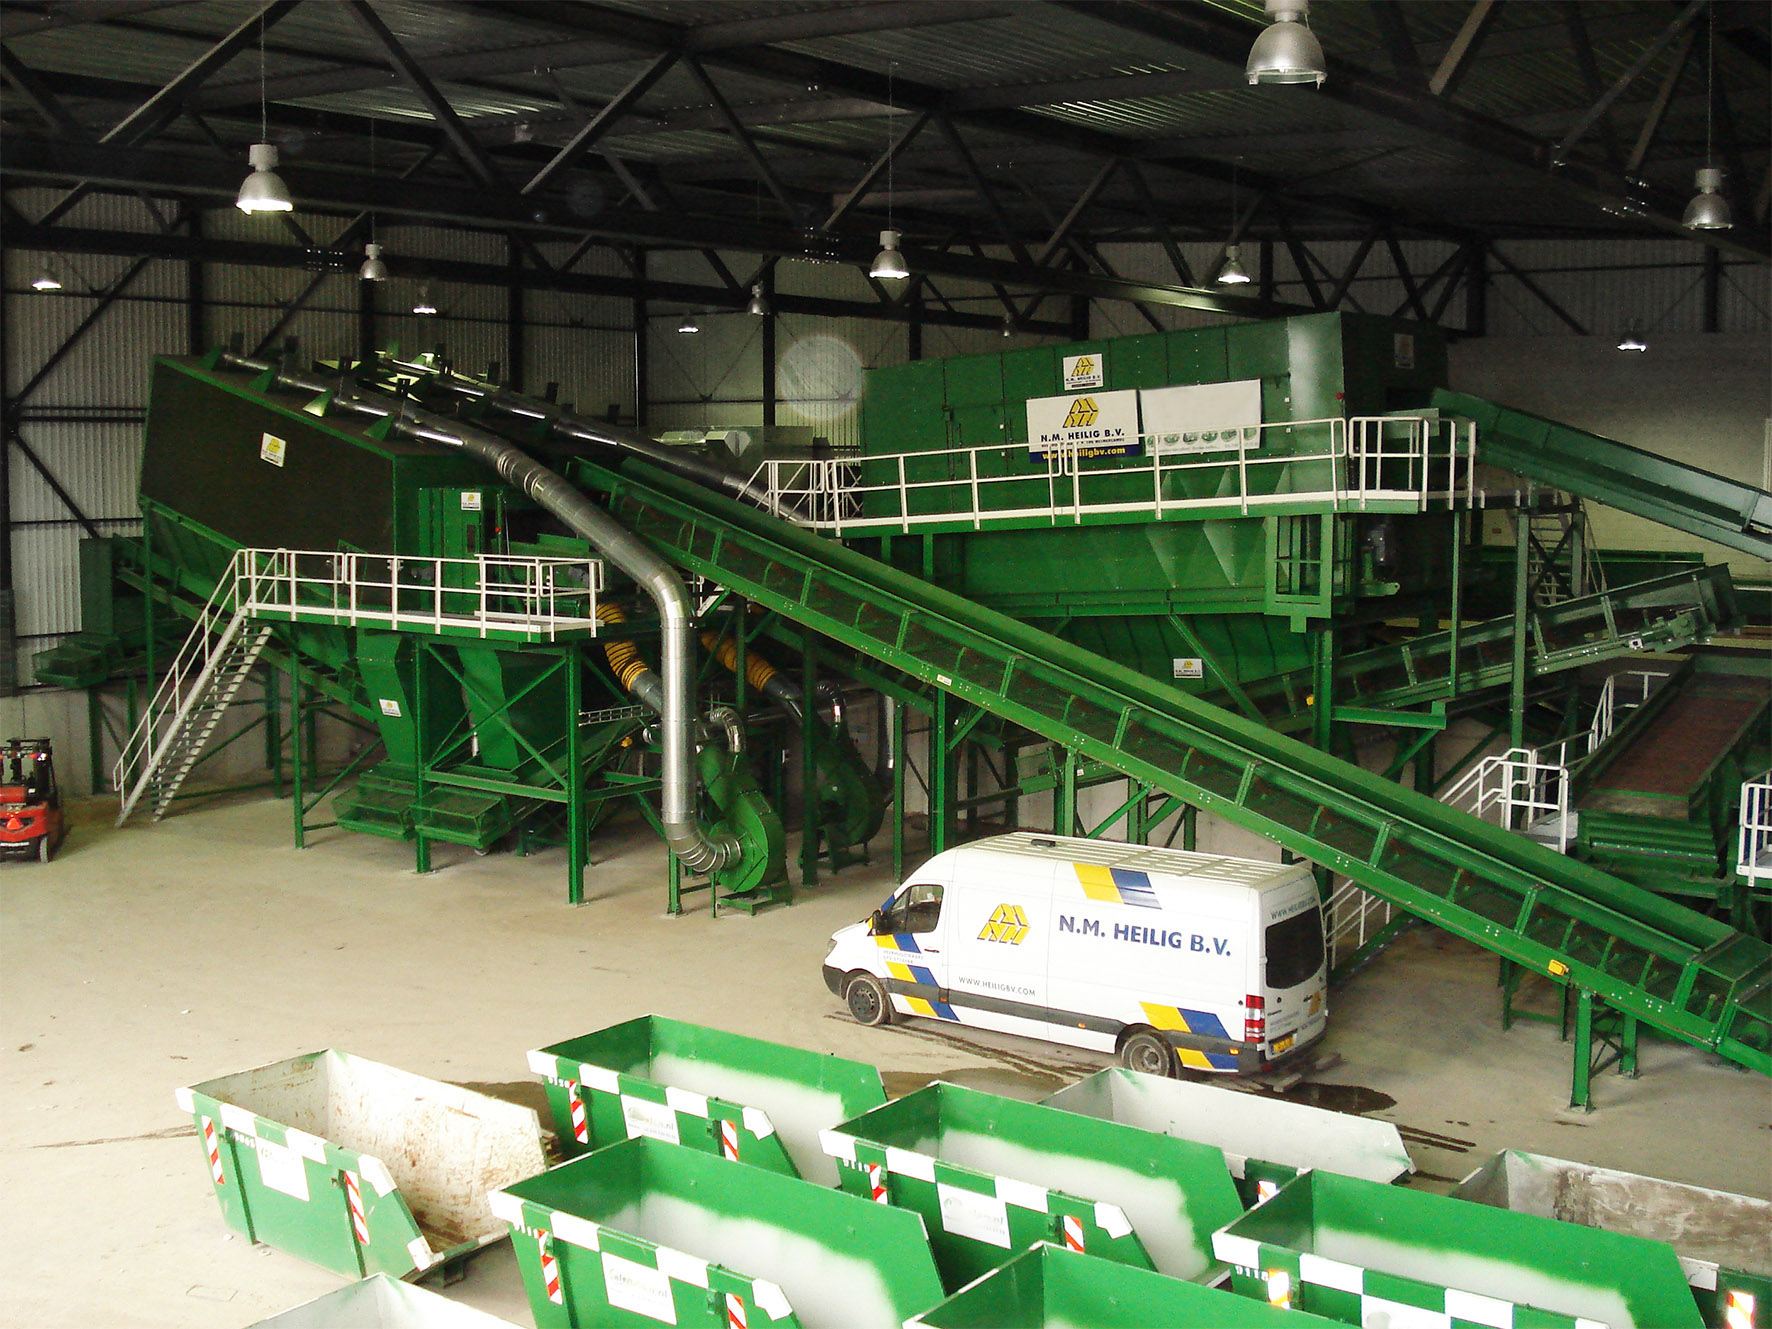 Construction and Demolition waste sorting installation